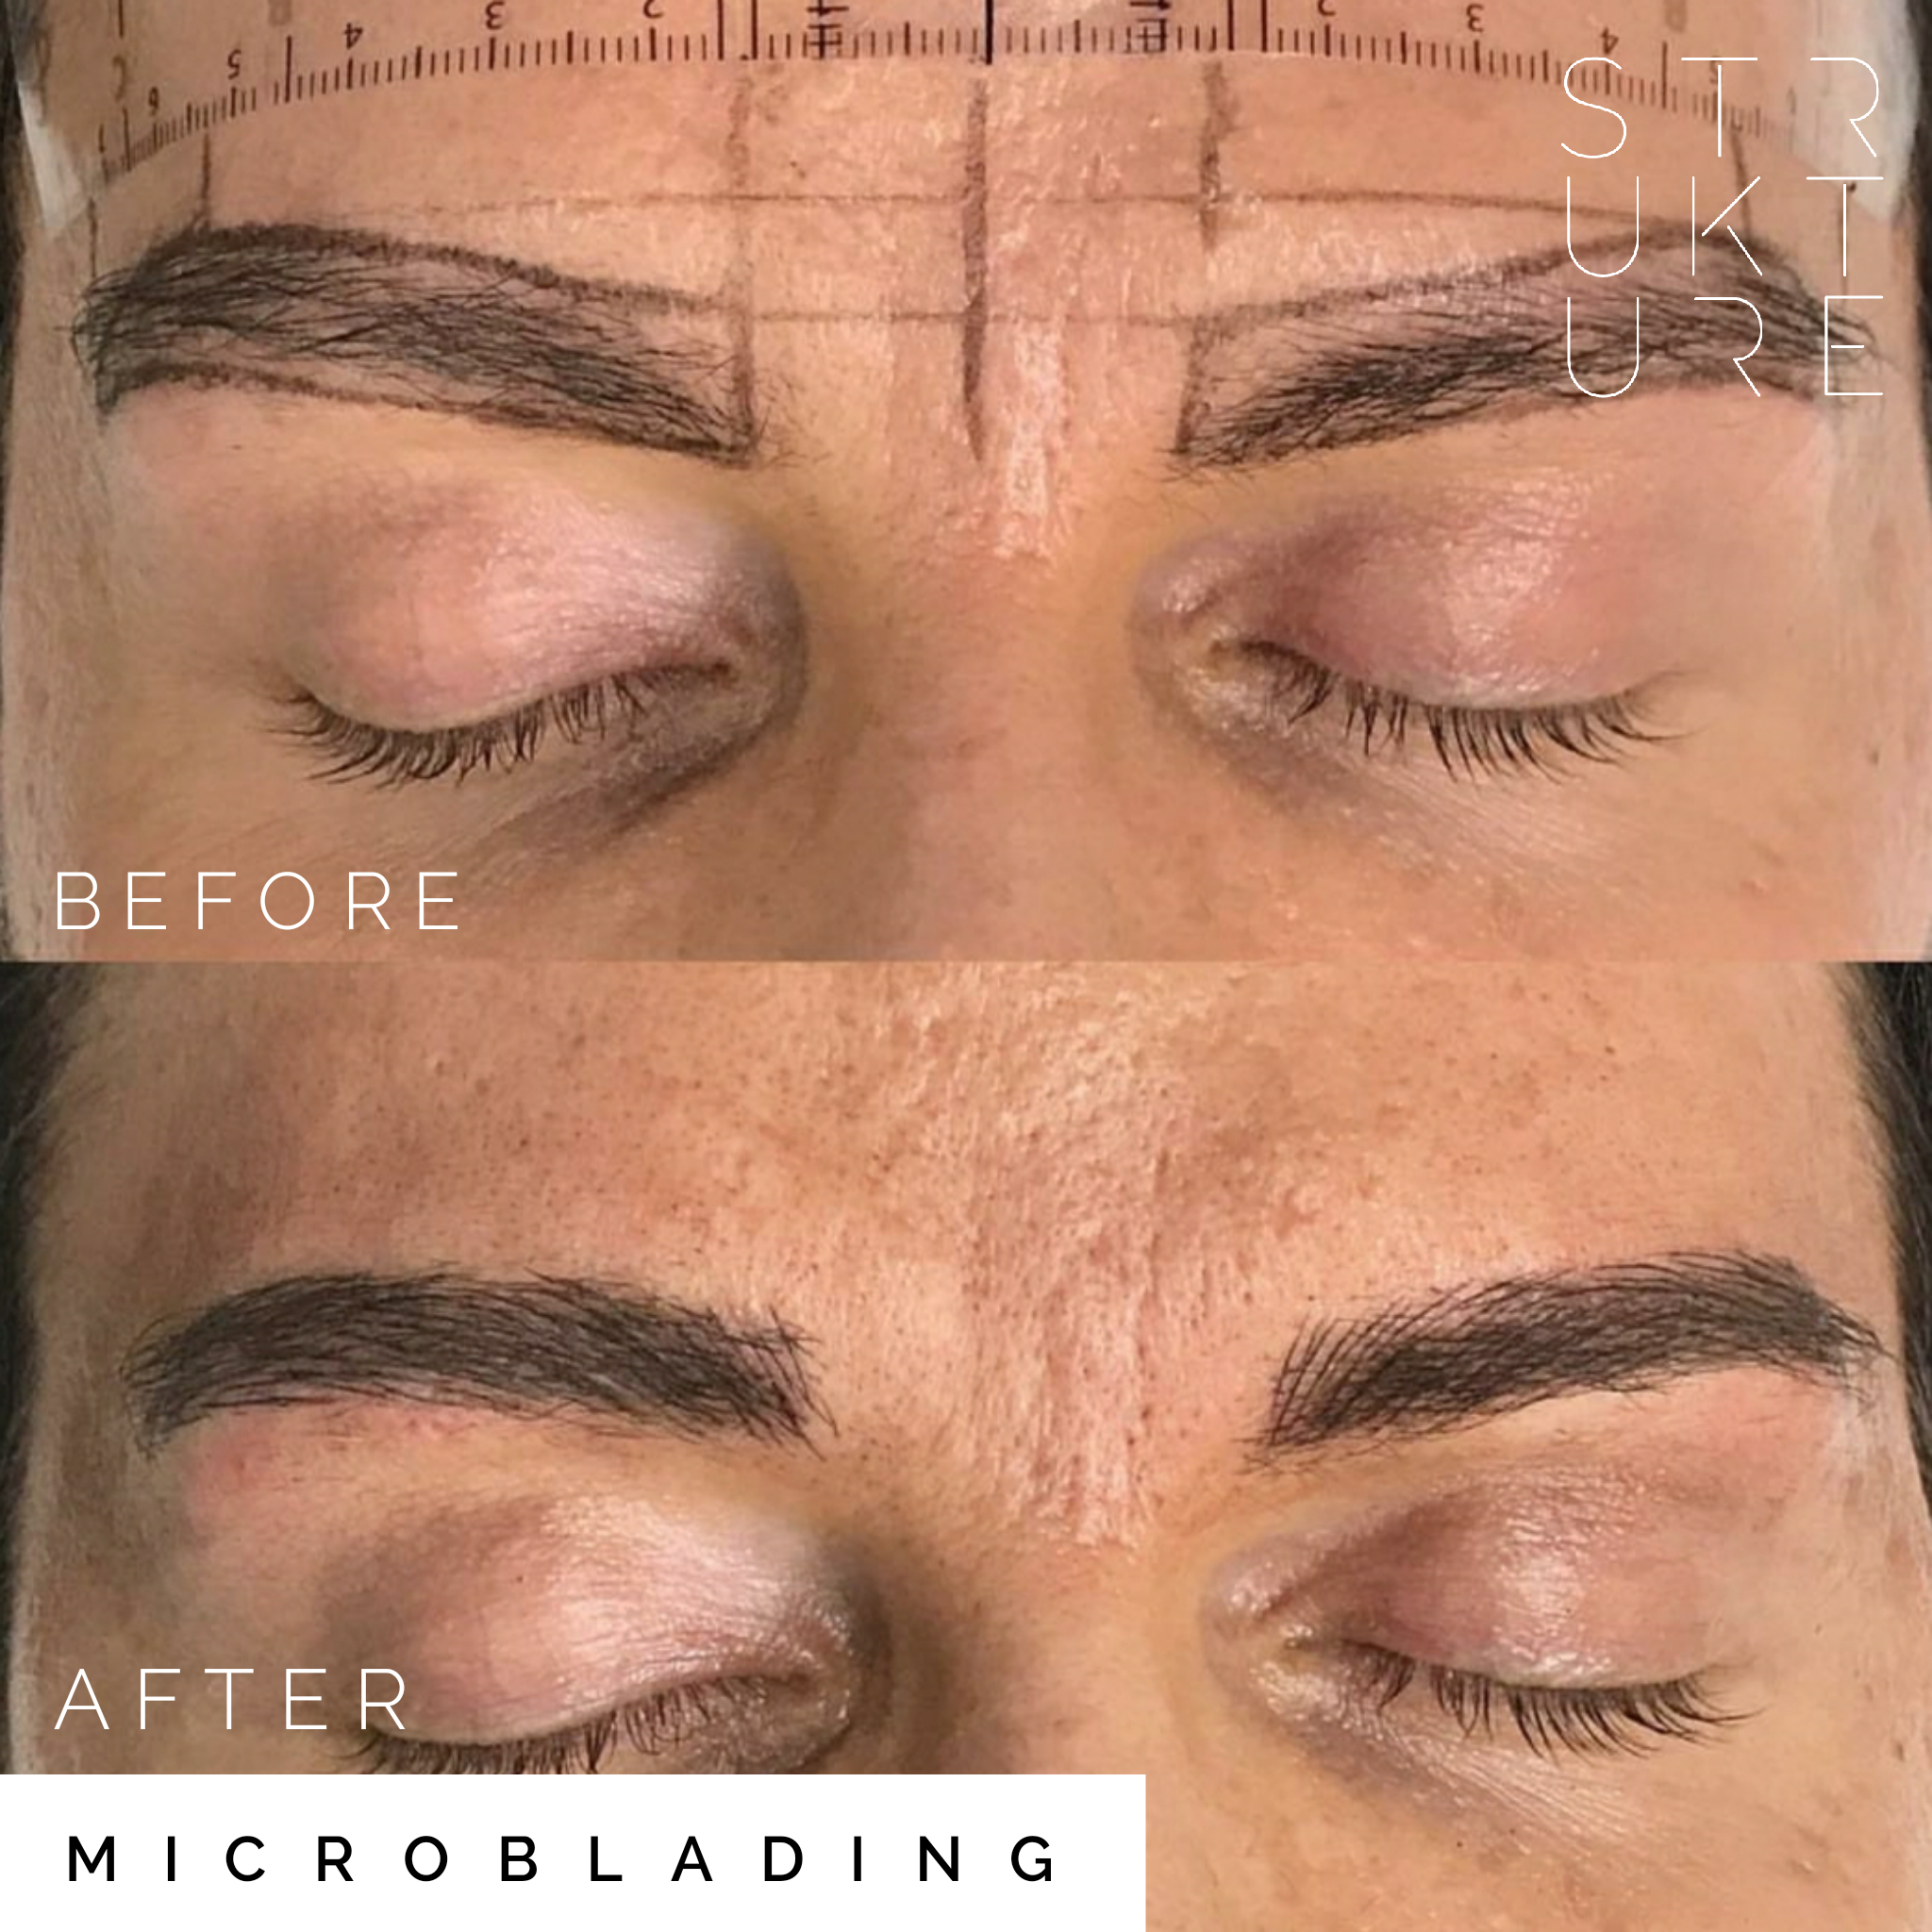 male-microblading-before-after-san-francisco-redwood-city.jpg